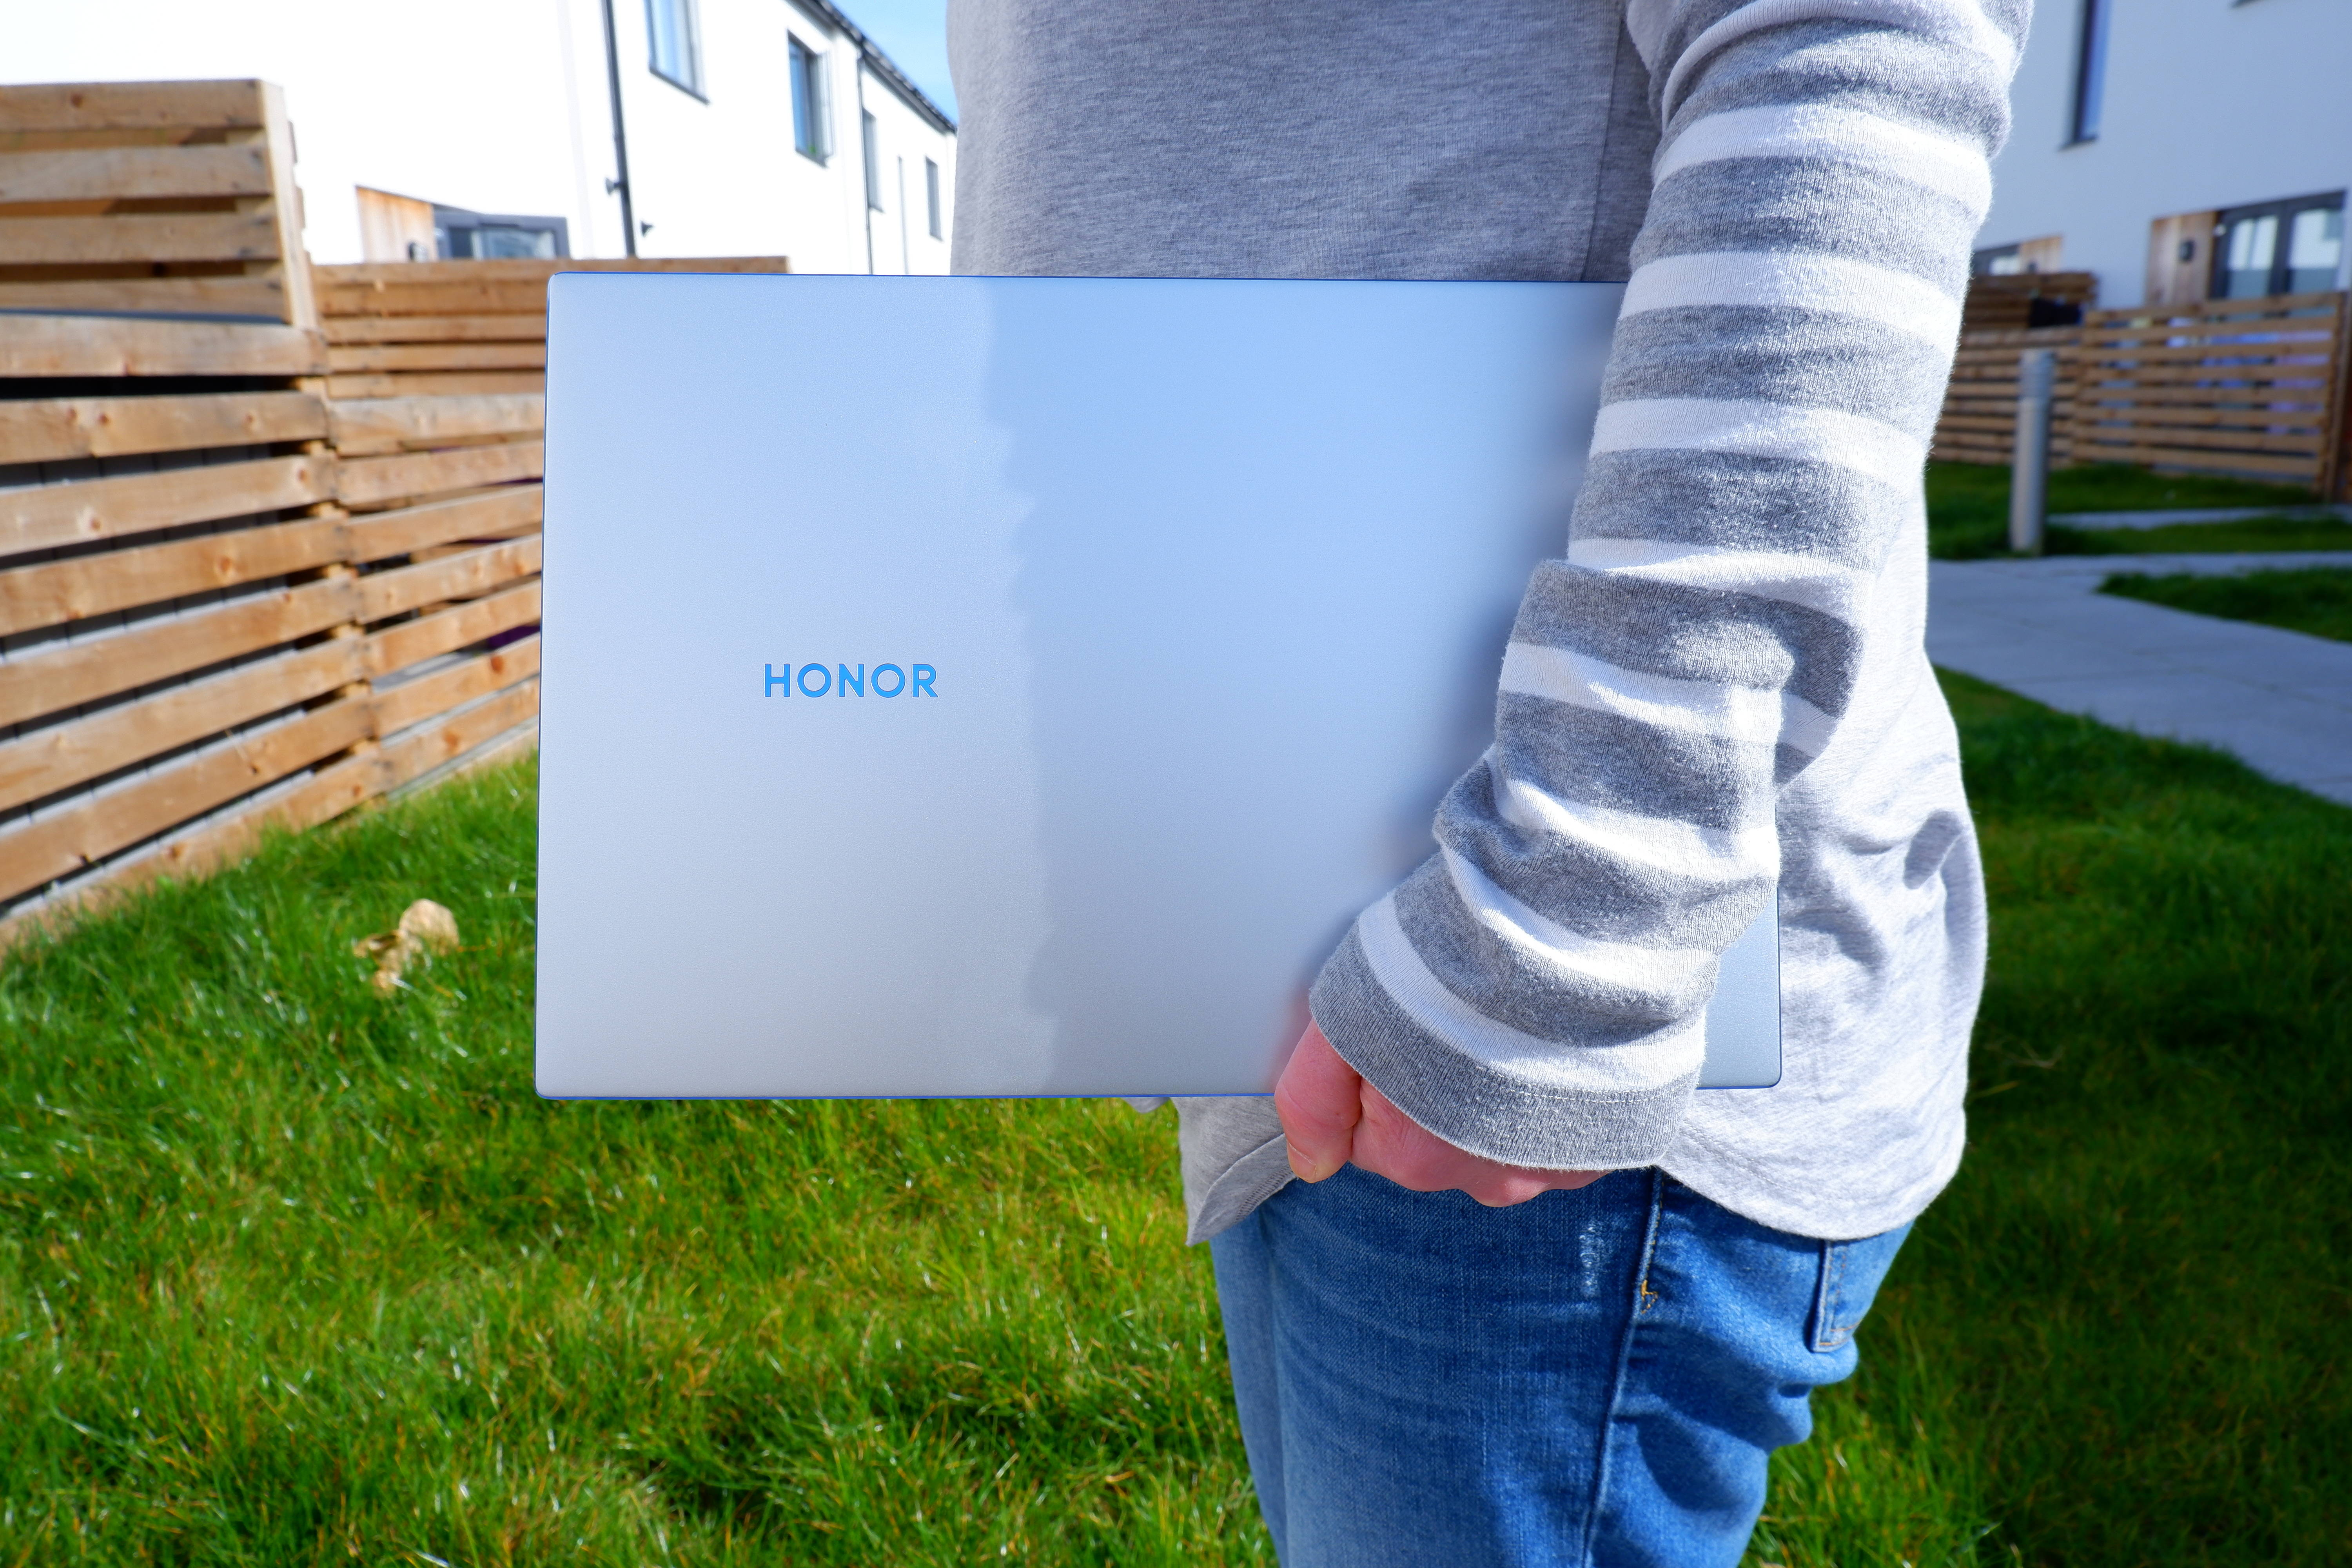 Honor Magicbook 14 Nice Keyboard And Ports Aplenty But With A